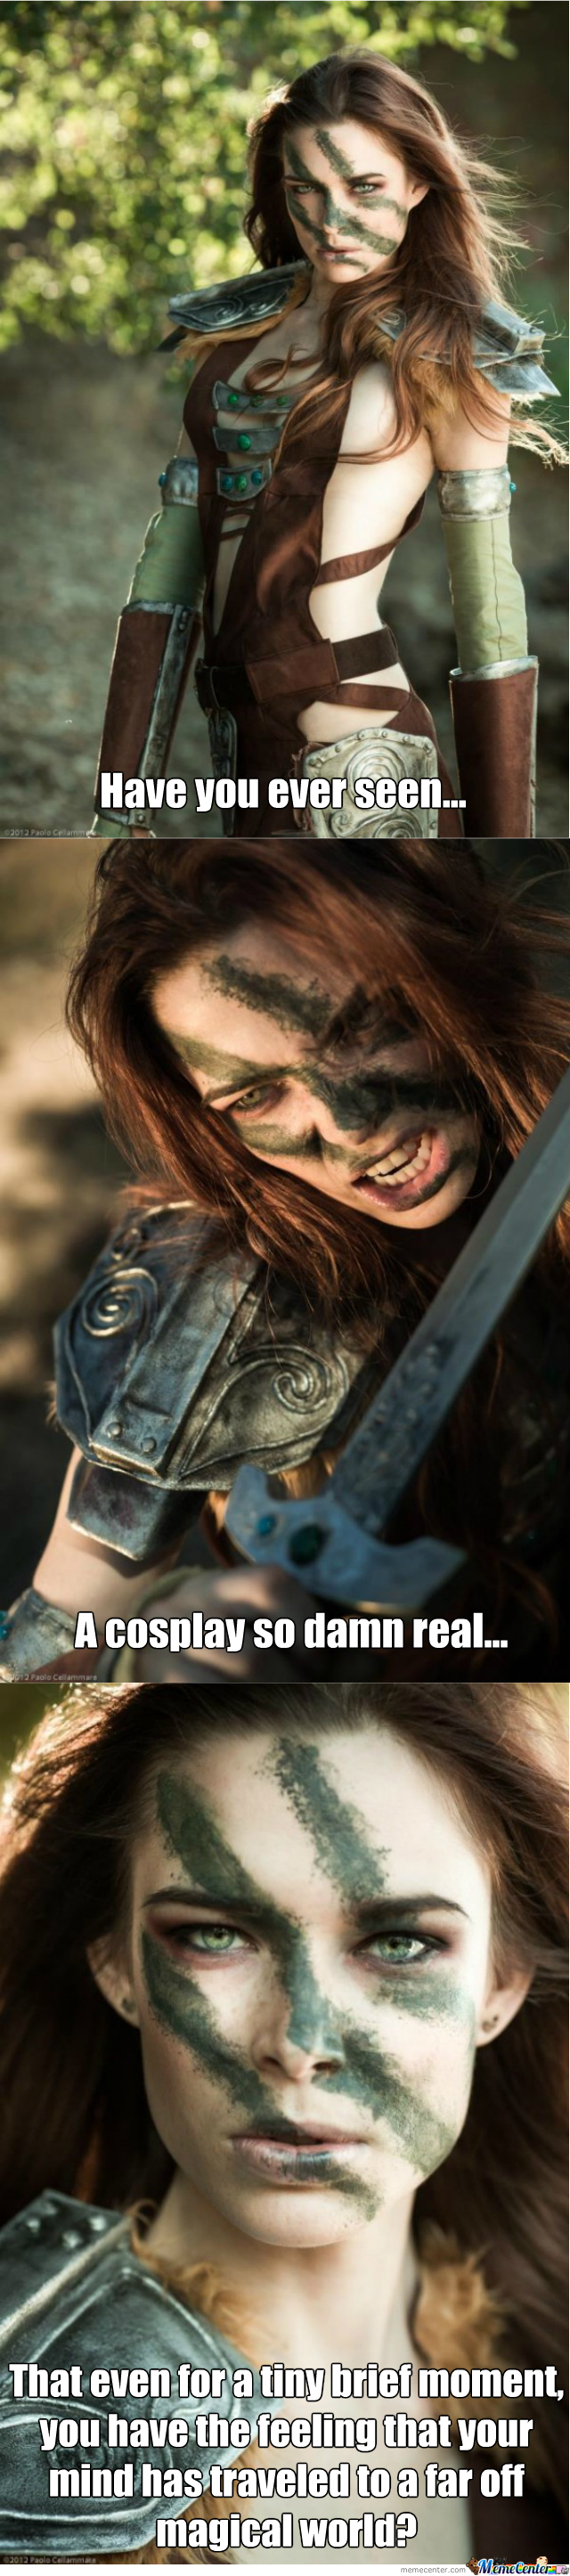 Aelia The Huntress Ultimate Cosplay